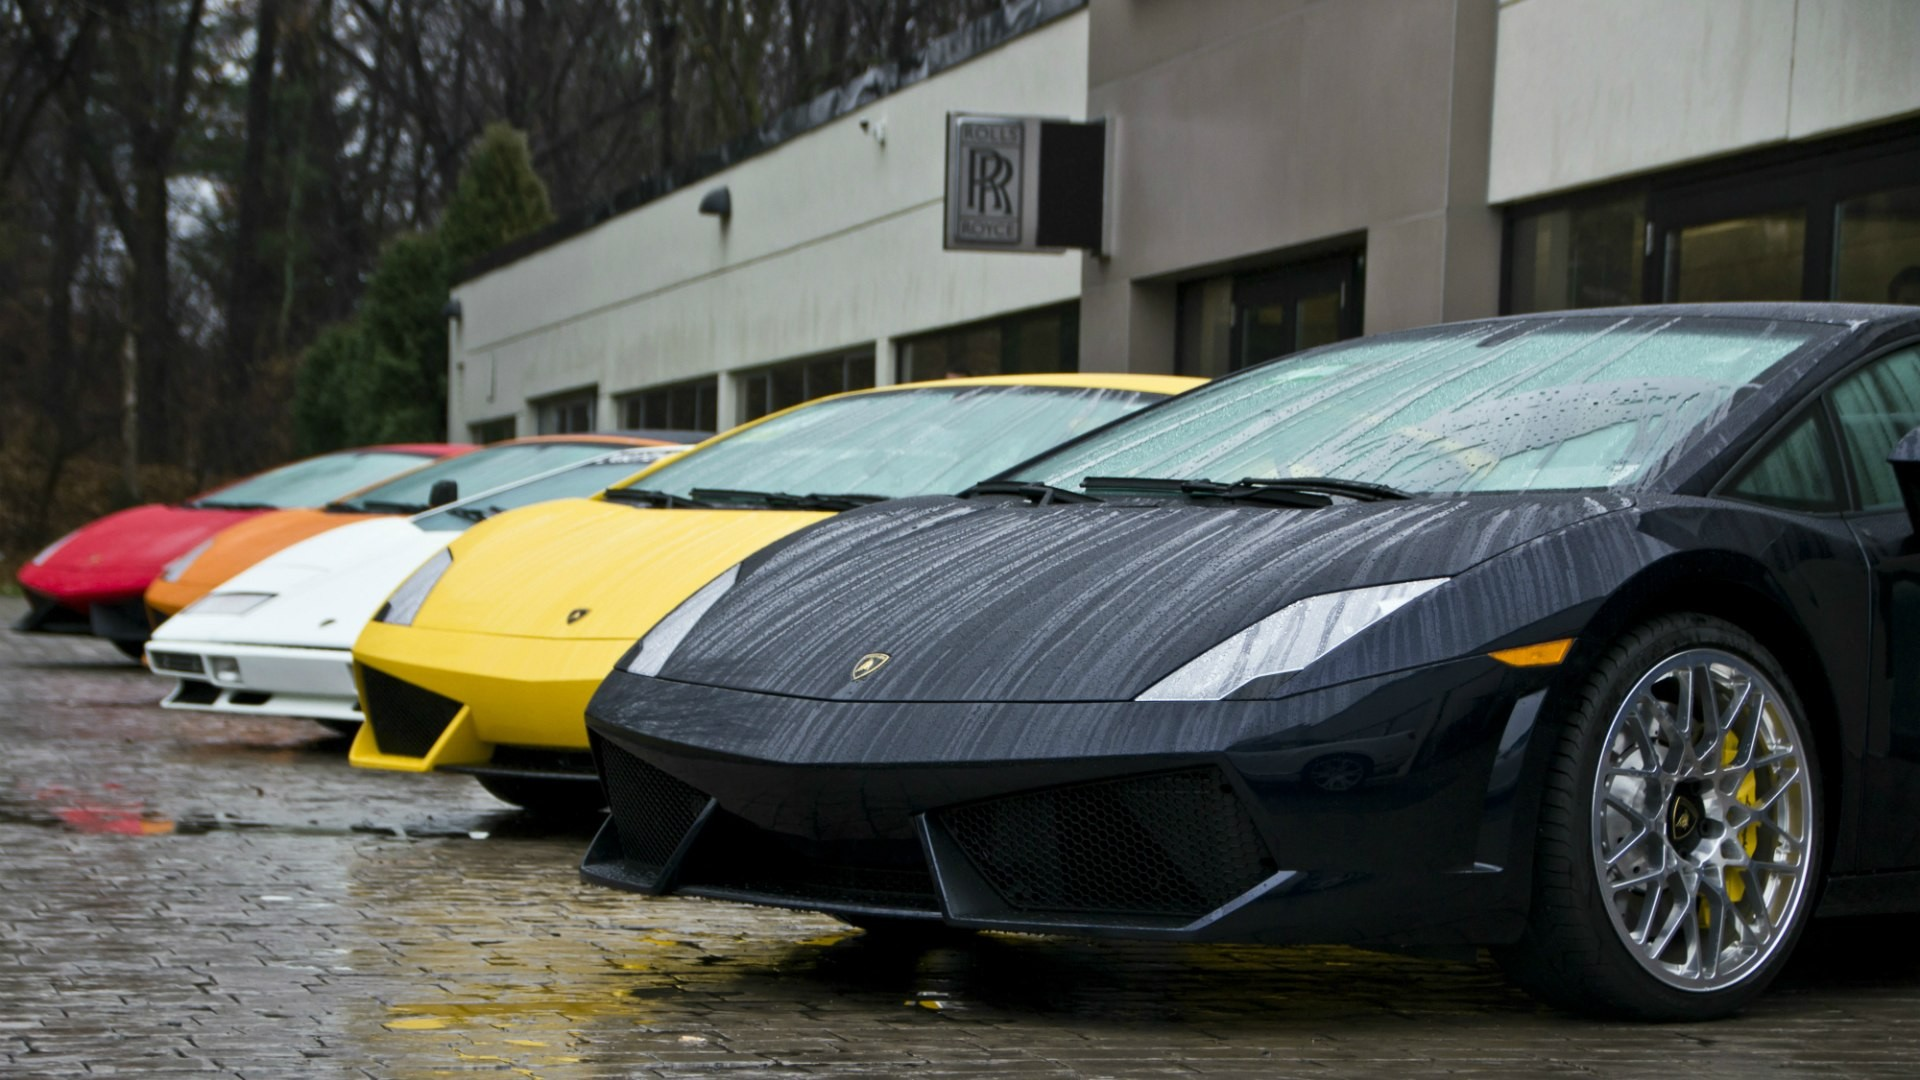 Lamborghini Cars 1080p HD Wallpaper Super Car Cars Background 1920x1080